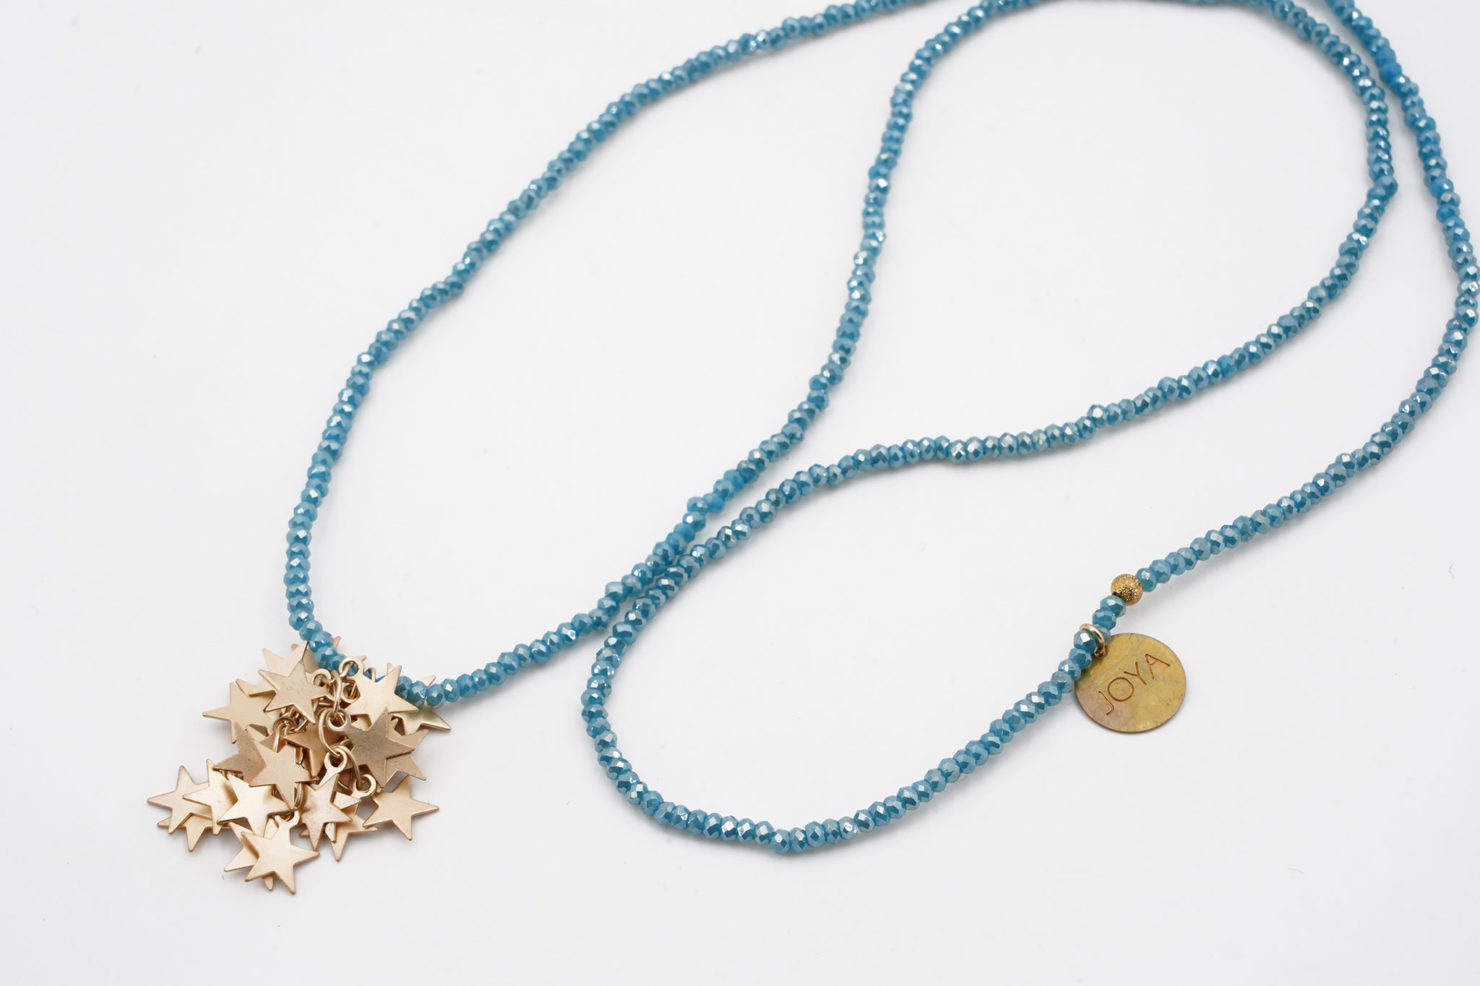 NECKLACE WITH STARS TURQUOISE - JOYA